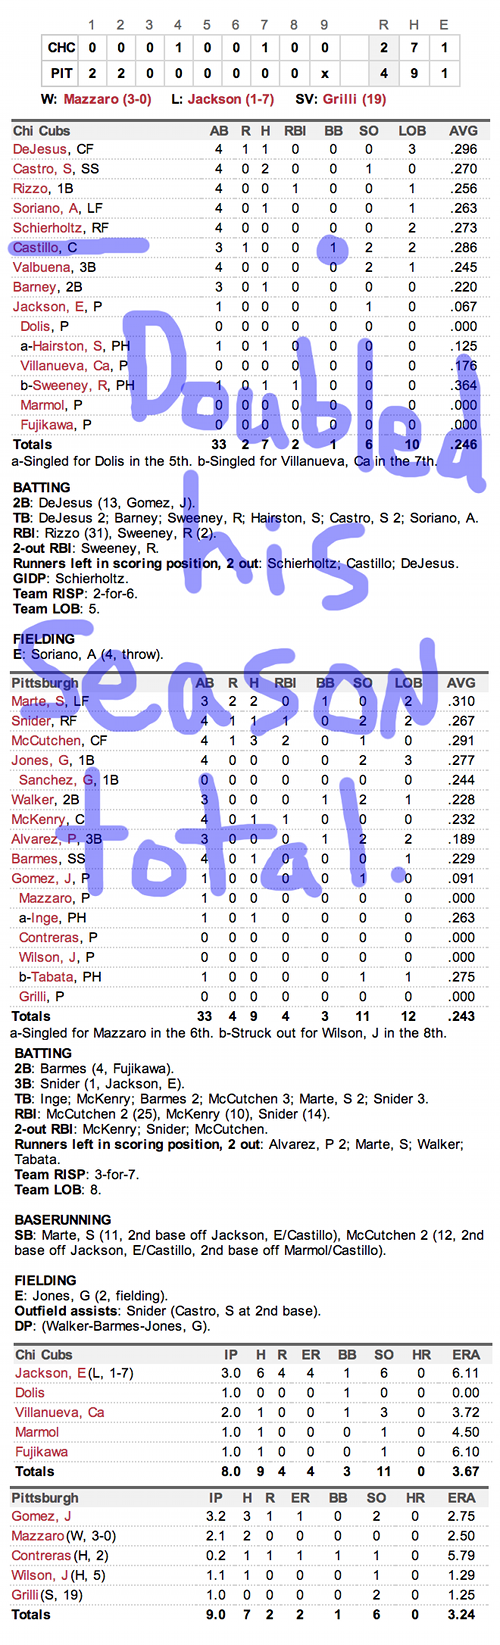 Enhanced Box Score: Cubs 2, Pirates 4 – May 23, 2013